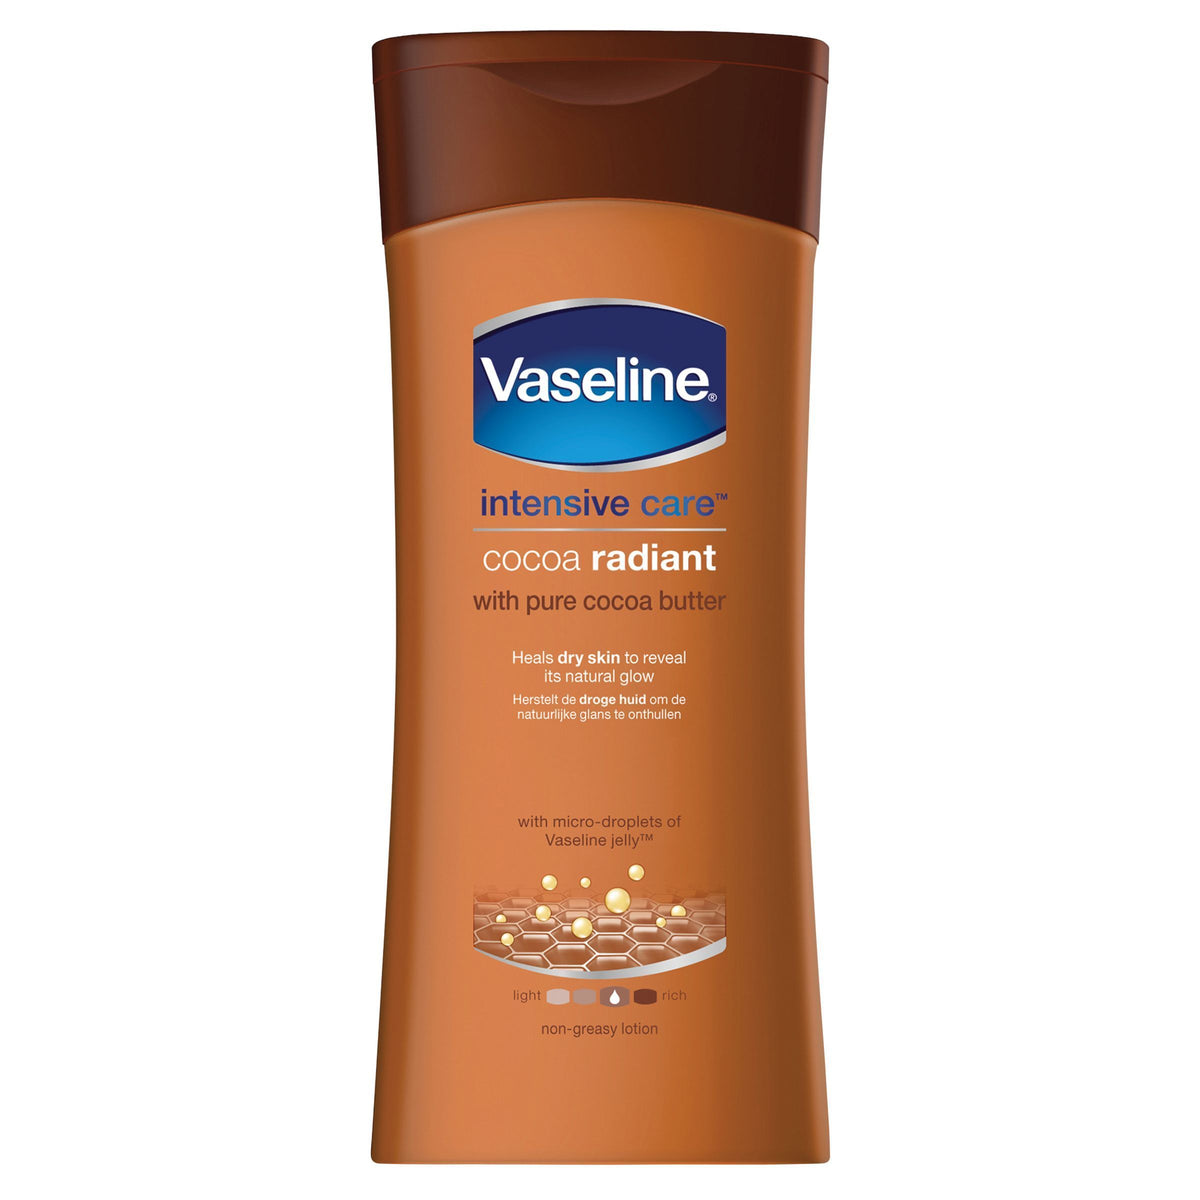 Vaseline Body Lotion Cocoa Radiant 400ml - Pack of 6